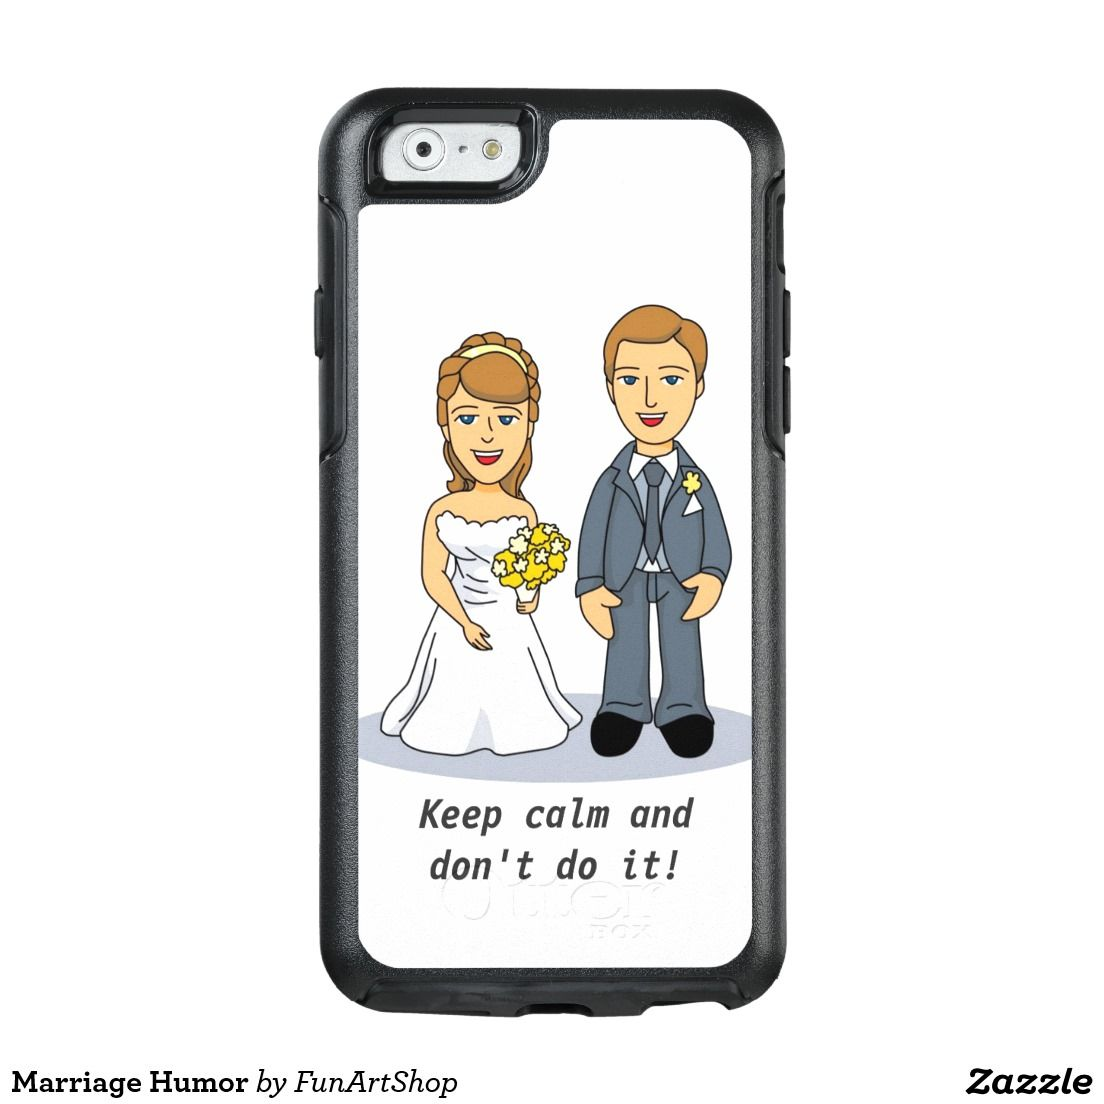 Marriage Humor OtterBox iPhone 6/6s Case